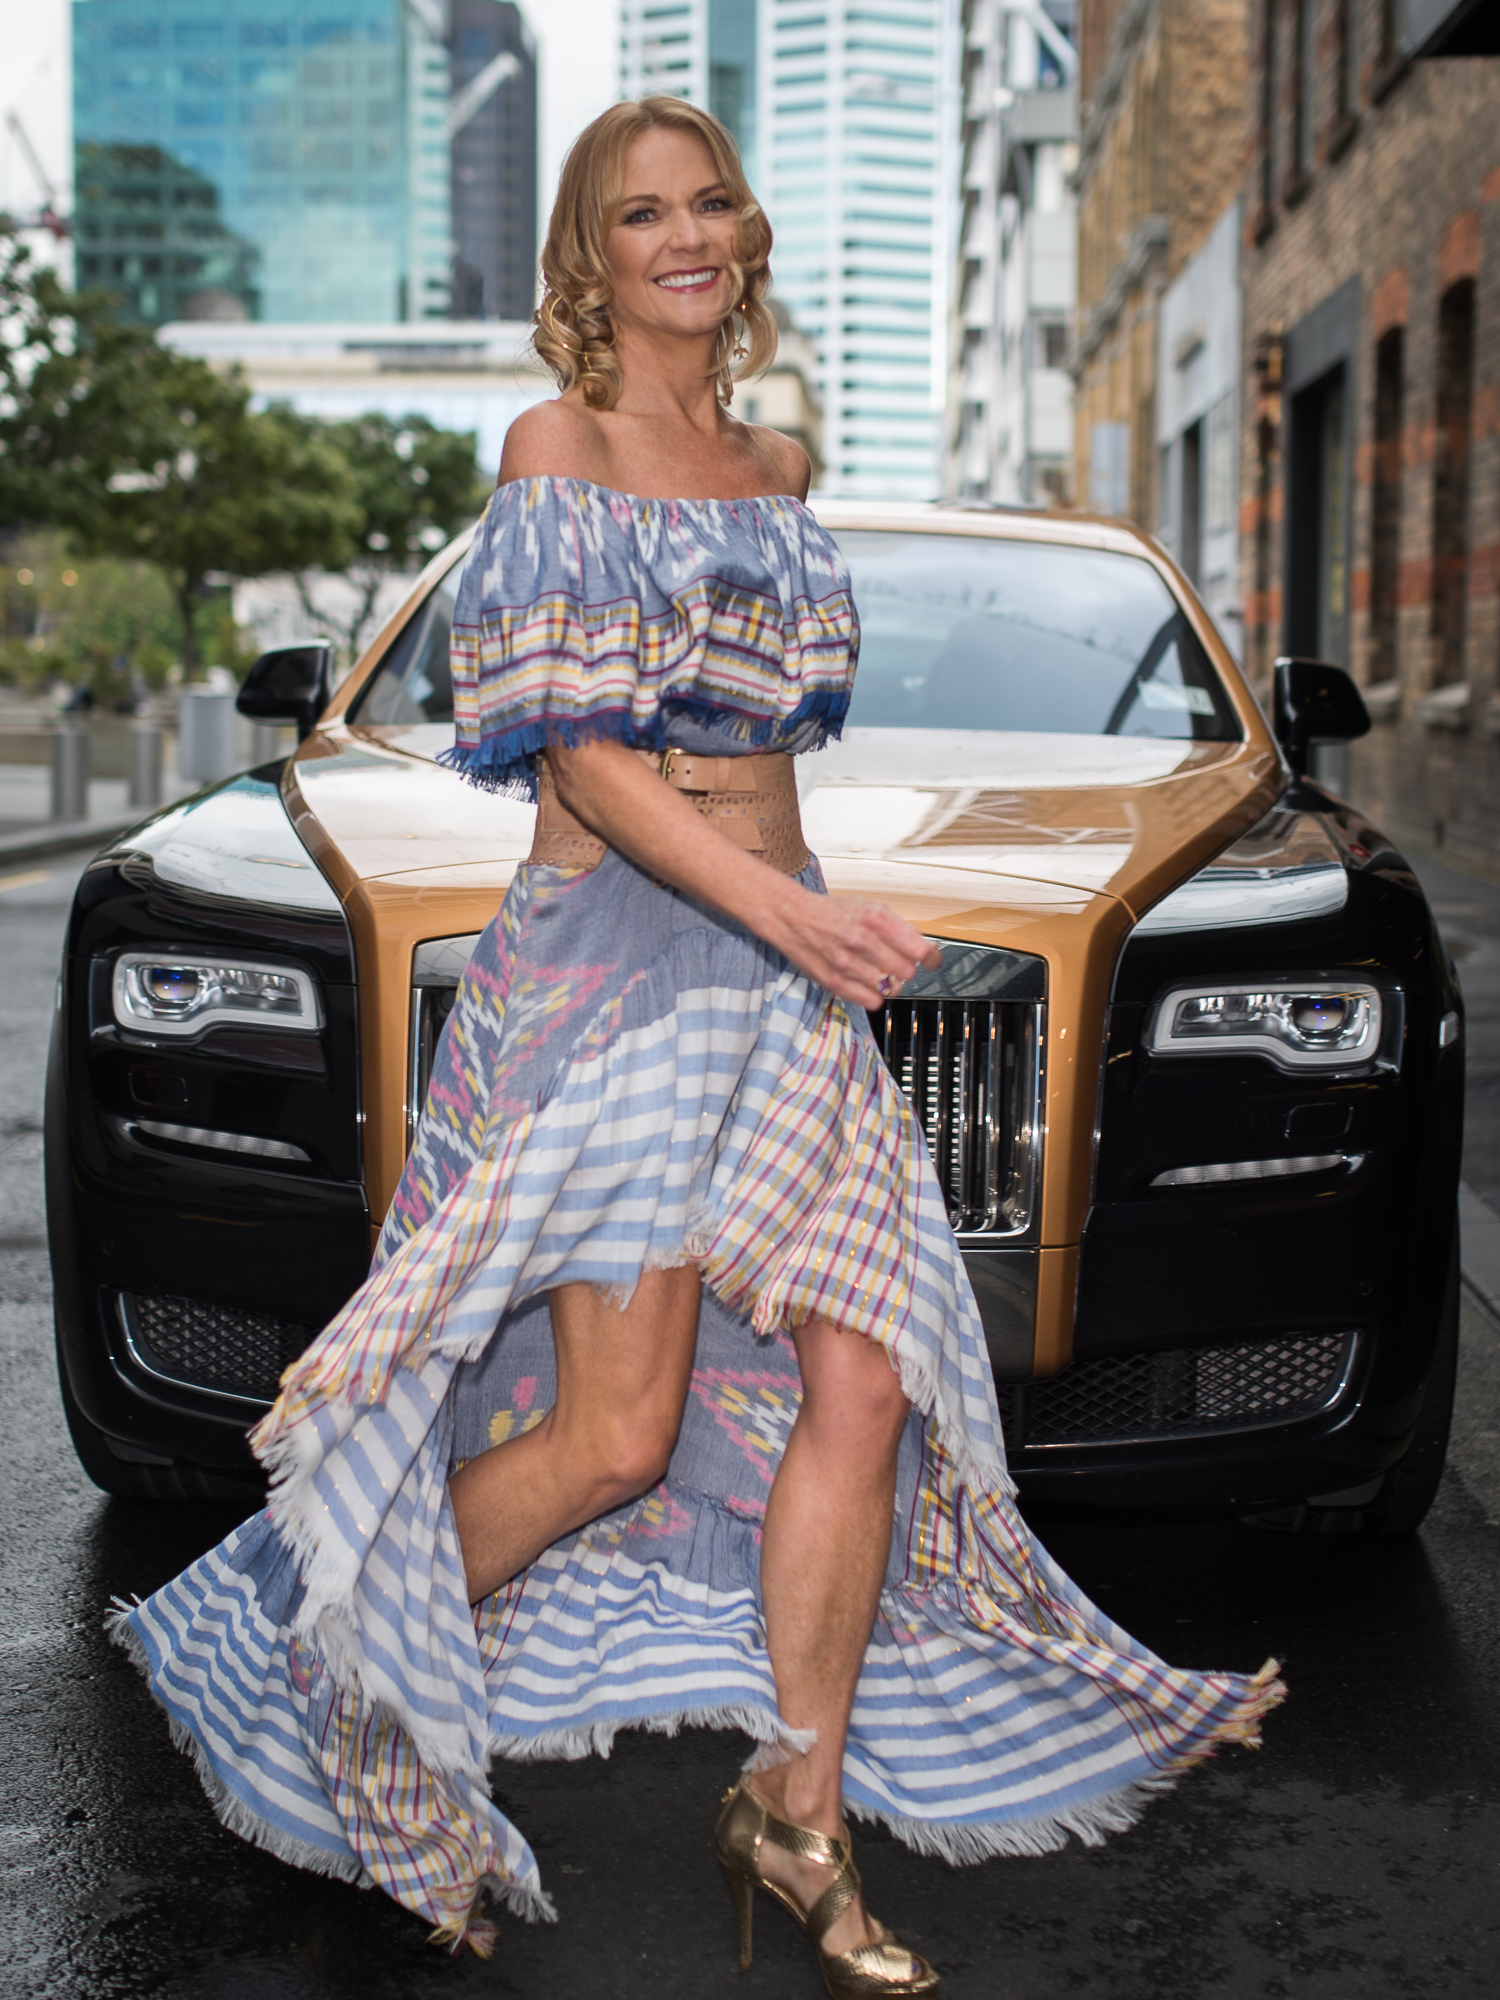 Auckland portrait photographer, Personal branding photography, Zambessi, Rolls Royce